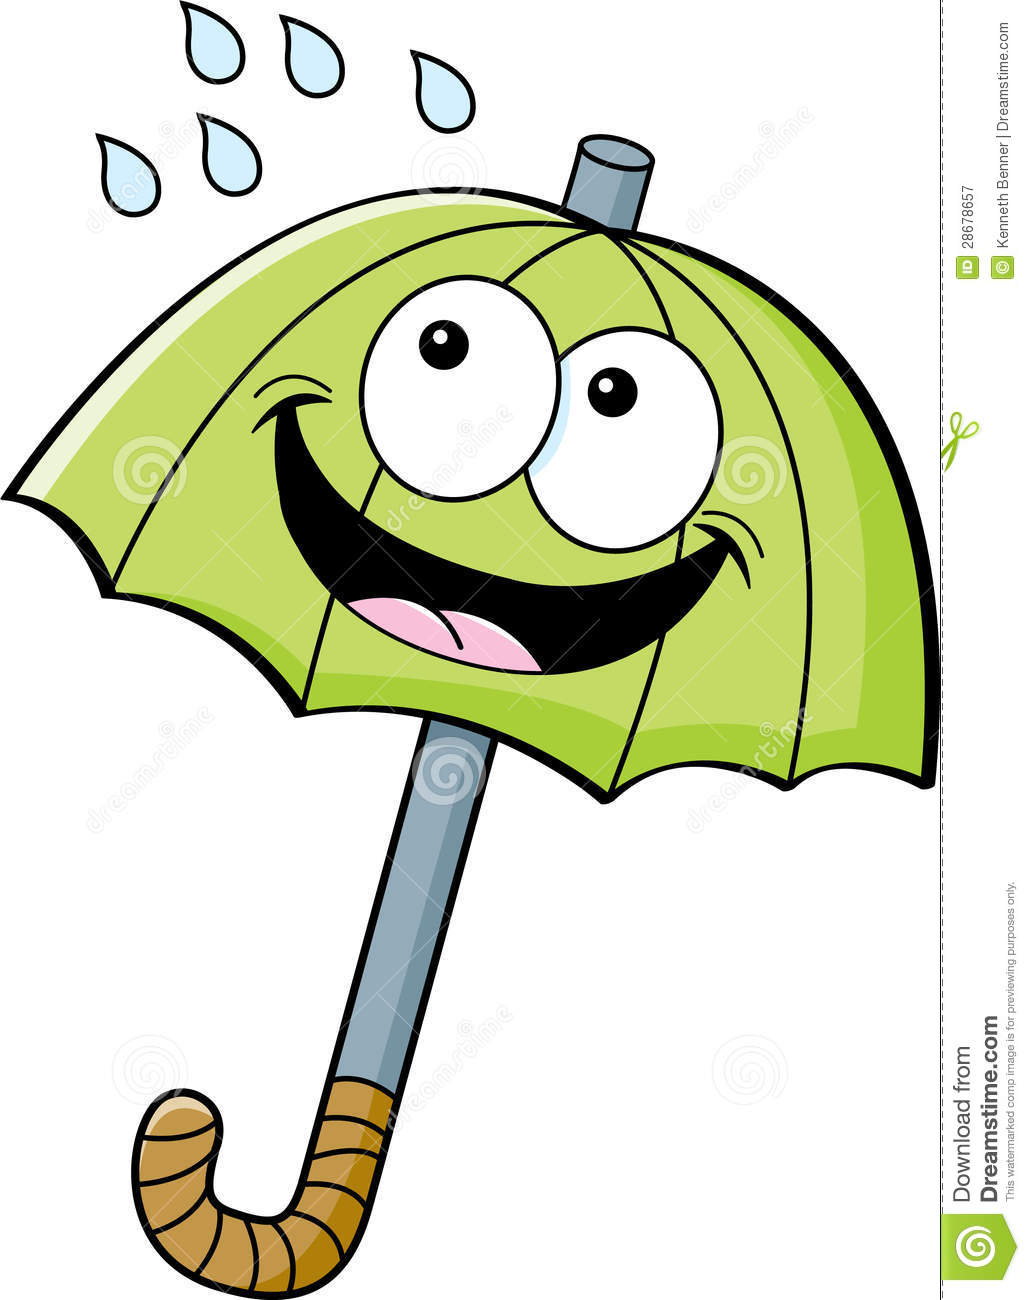 Cartoon Umbrella Royalty Free Stock Photography - Image: 28678657